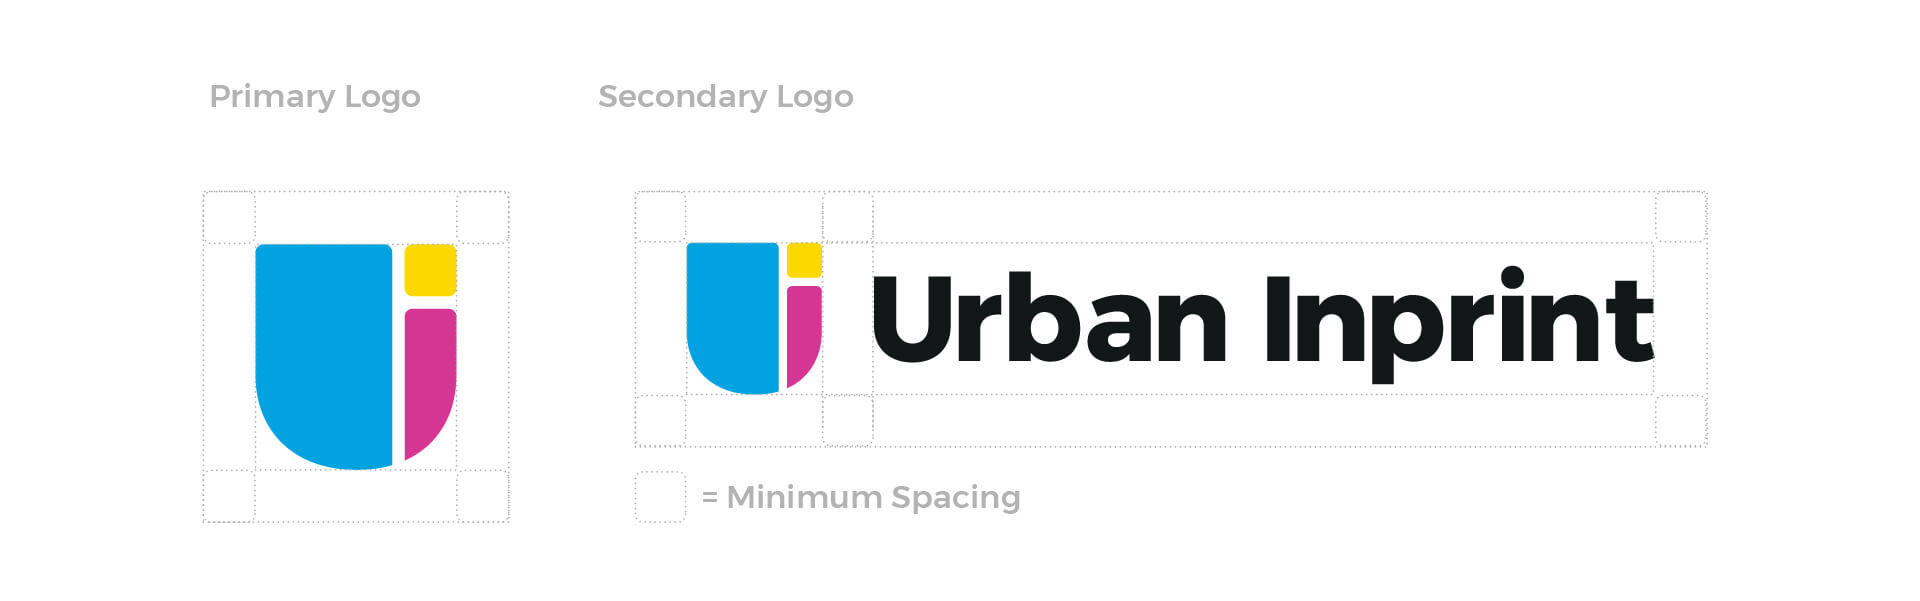 Urban Inprint Brand Variations